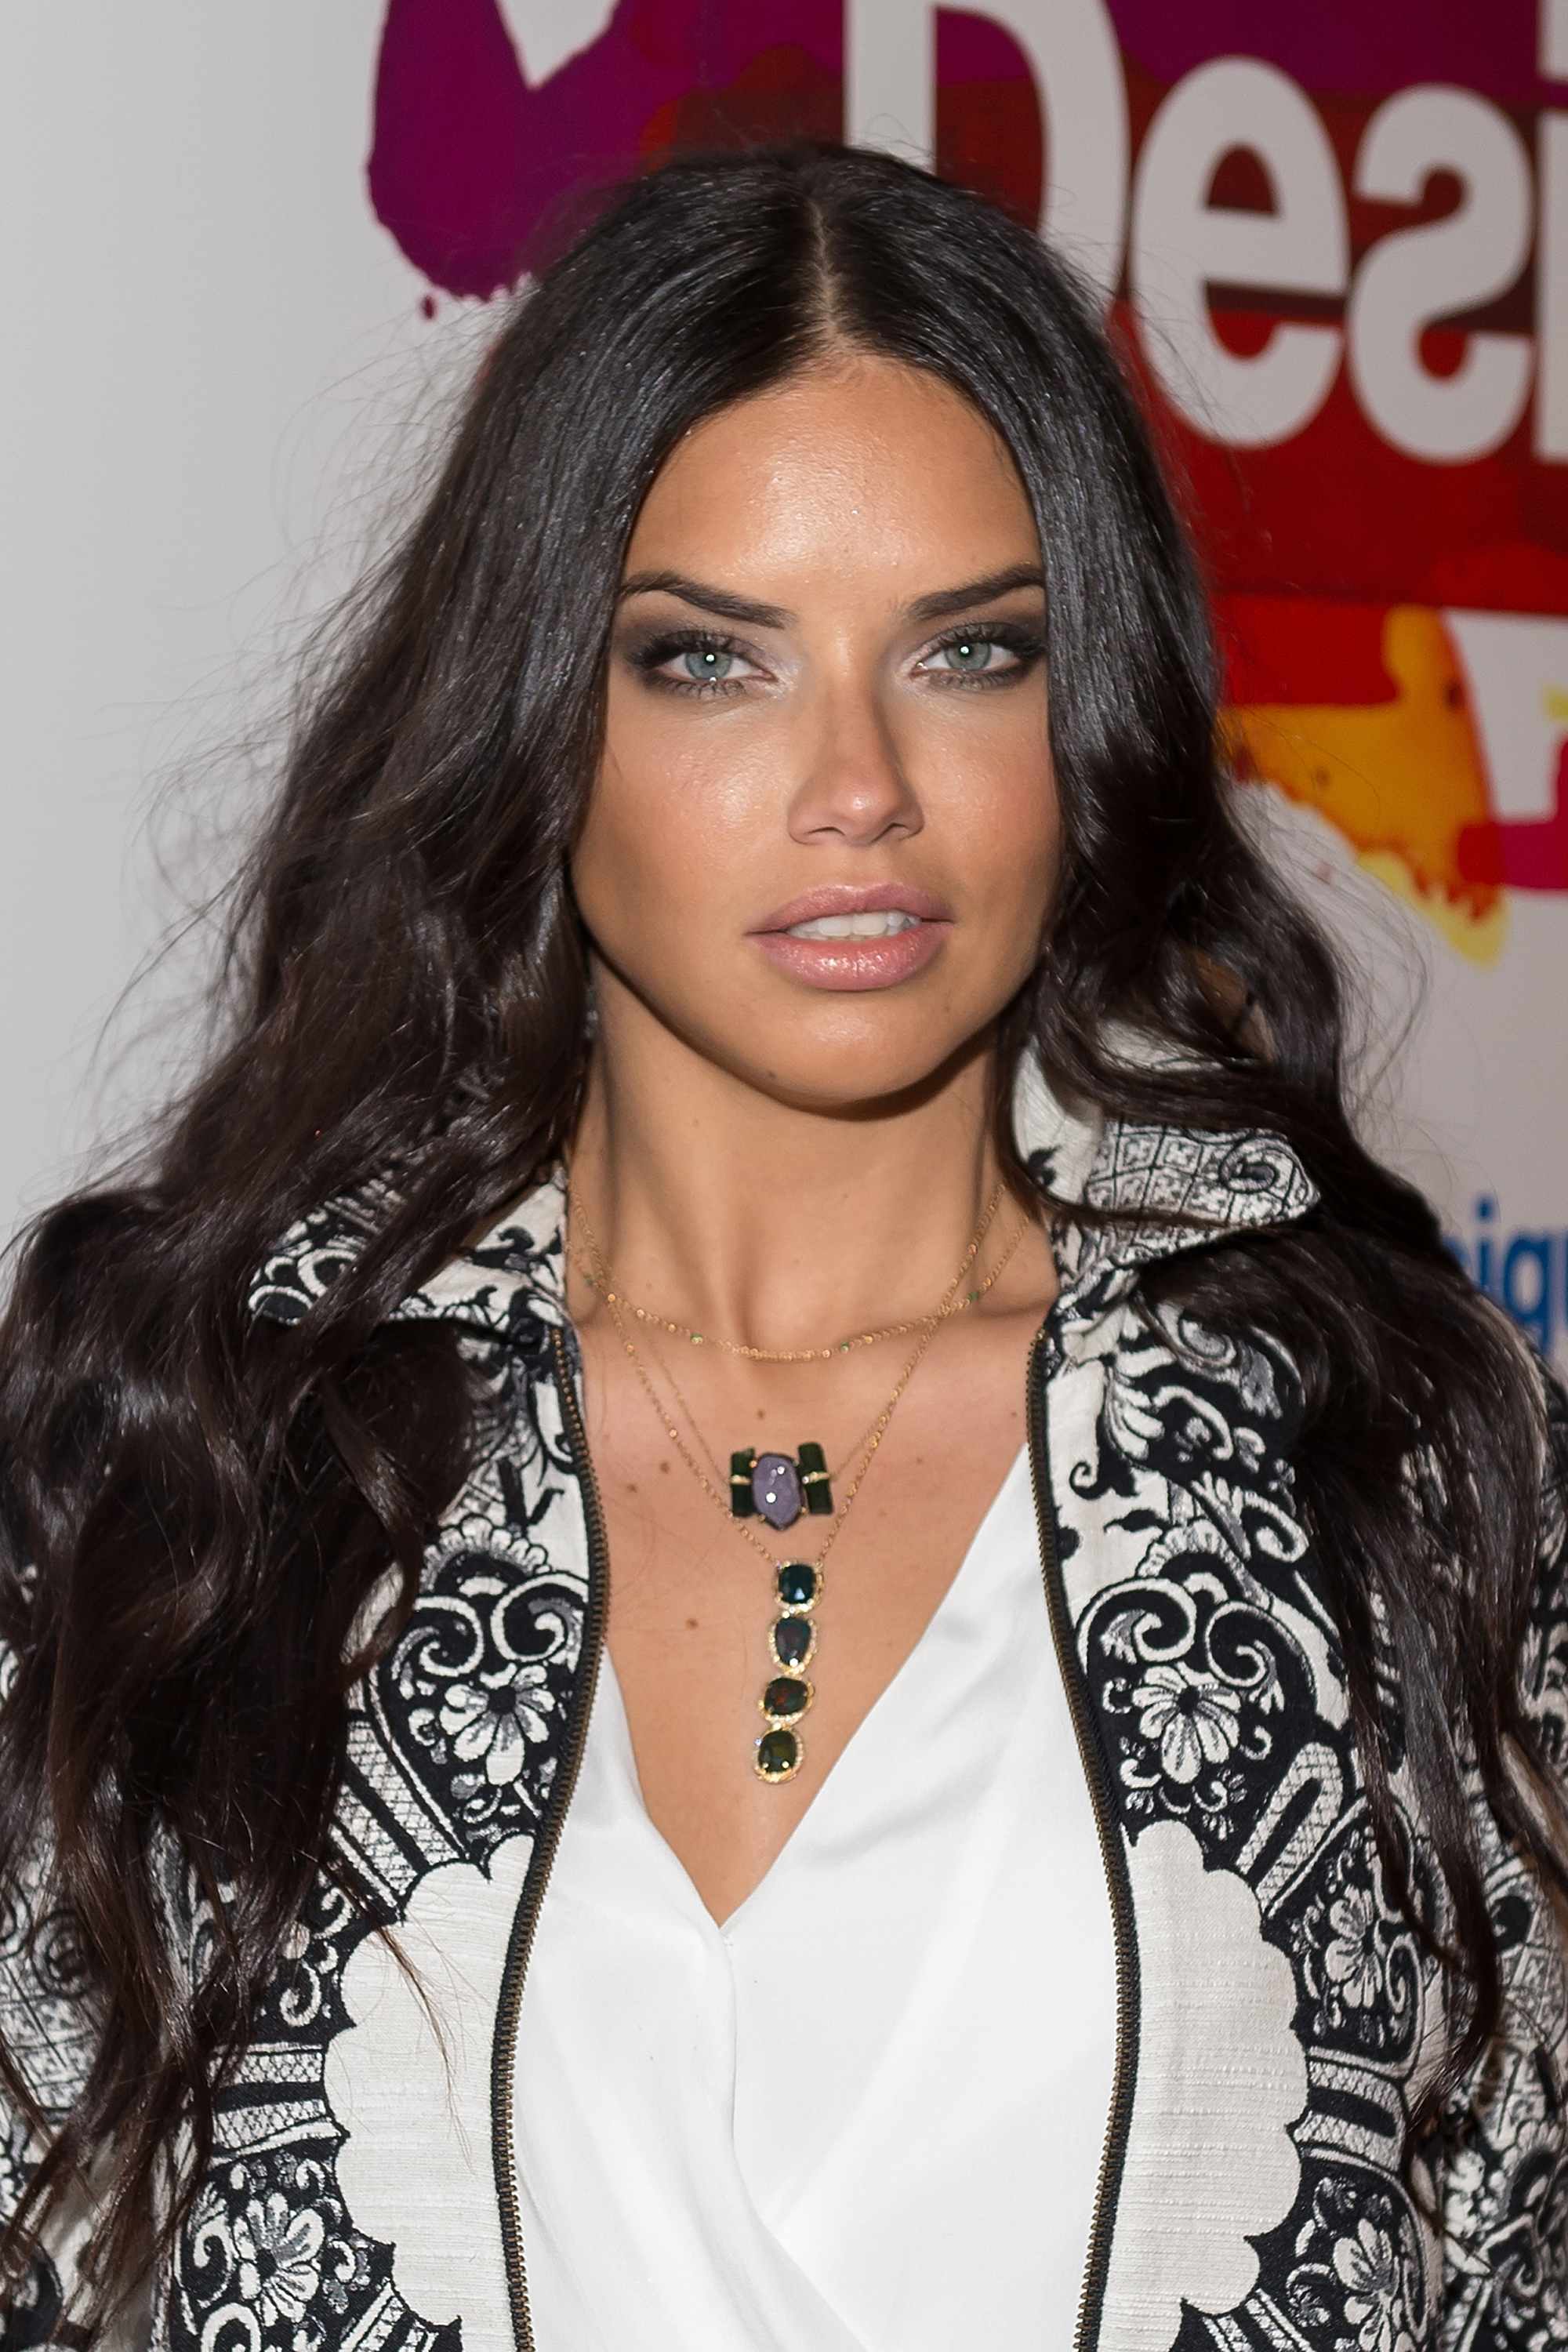 Model Adriana Lima attends Desigual show during Mercedes-Benz Fashion Week Fall 2015 at The Theatre at Lincoln Center on Feb. 12, 2015 in New York City.